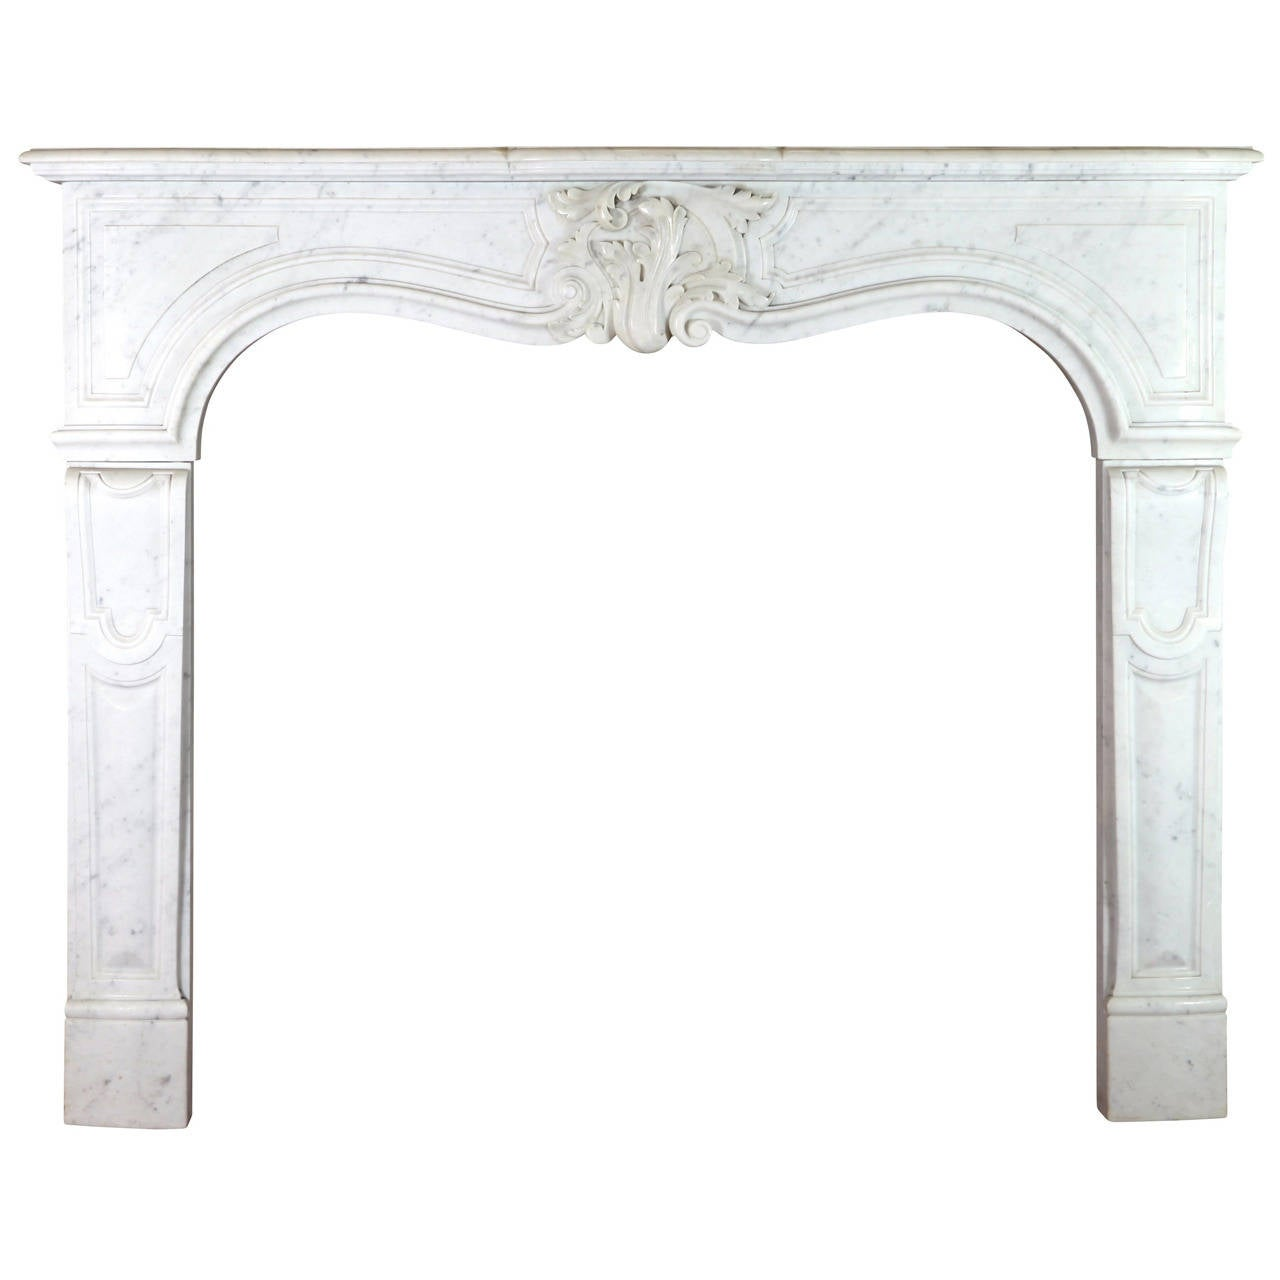 19th Century White Carrara Marble Antique Fireplace Mantel, Regency Style